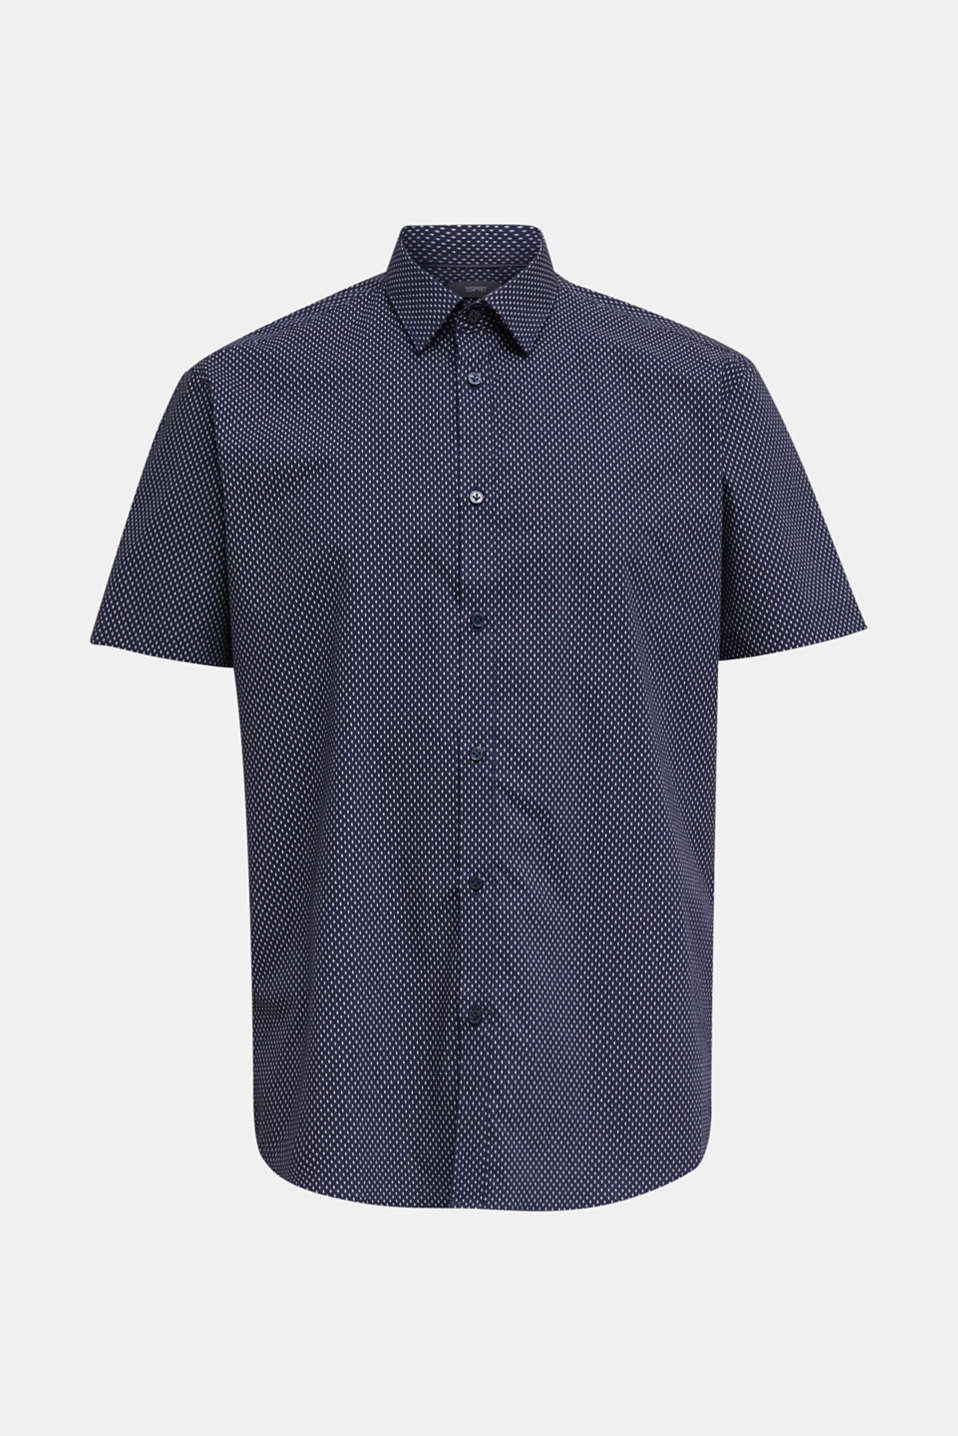 Shirt with mechanical stretch, 100% cotton, NAVY 4, detail image number 8